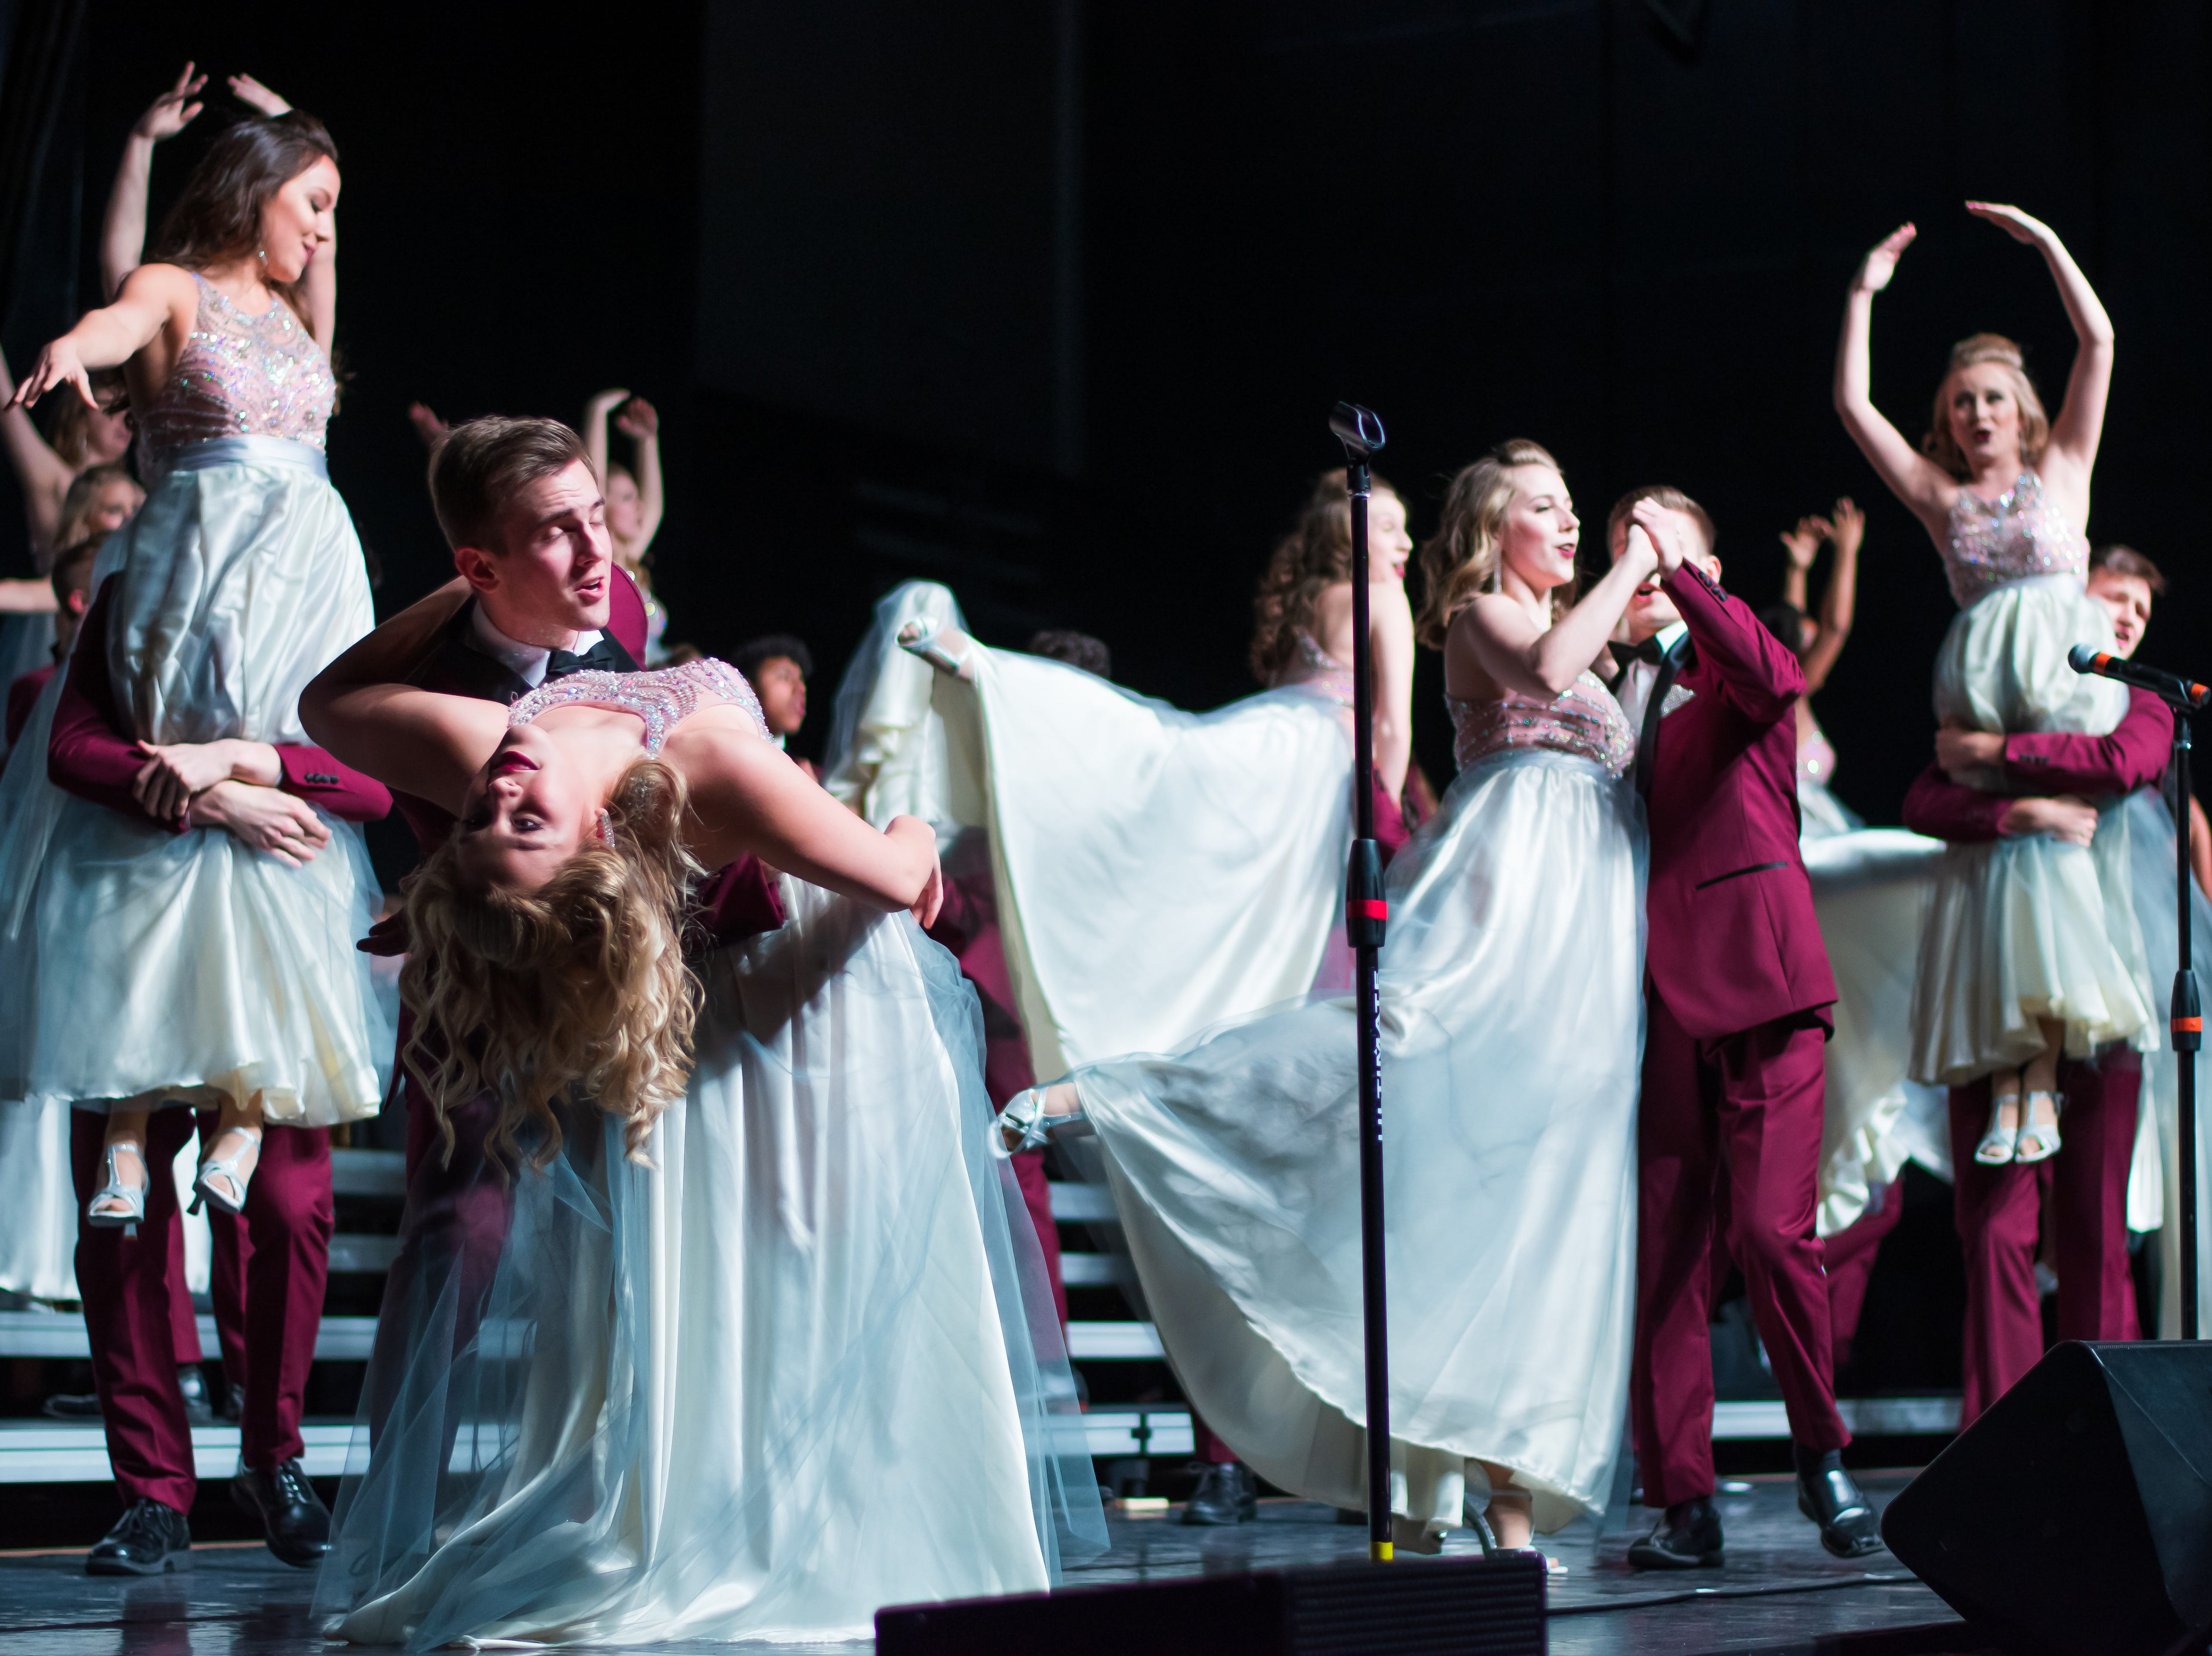 Valley High show choir group Choralation performs on Saturday, Jan. 12, 2019 at the Waukee Star Struck Show Choir Invitational in the Waukee High School Field House.